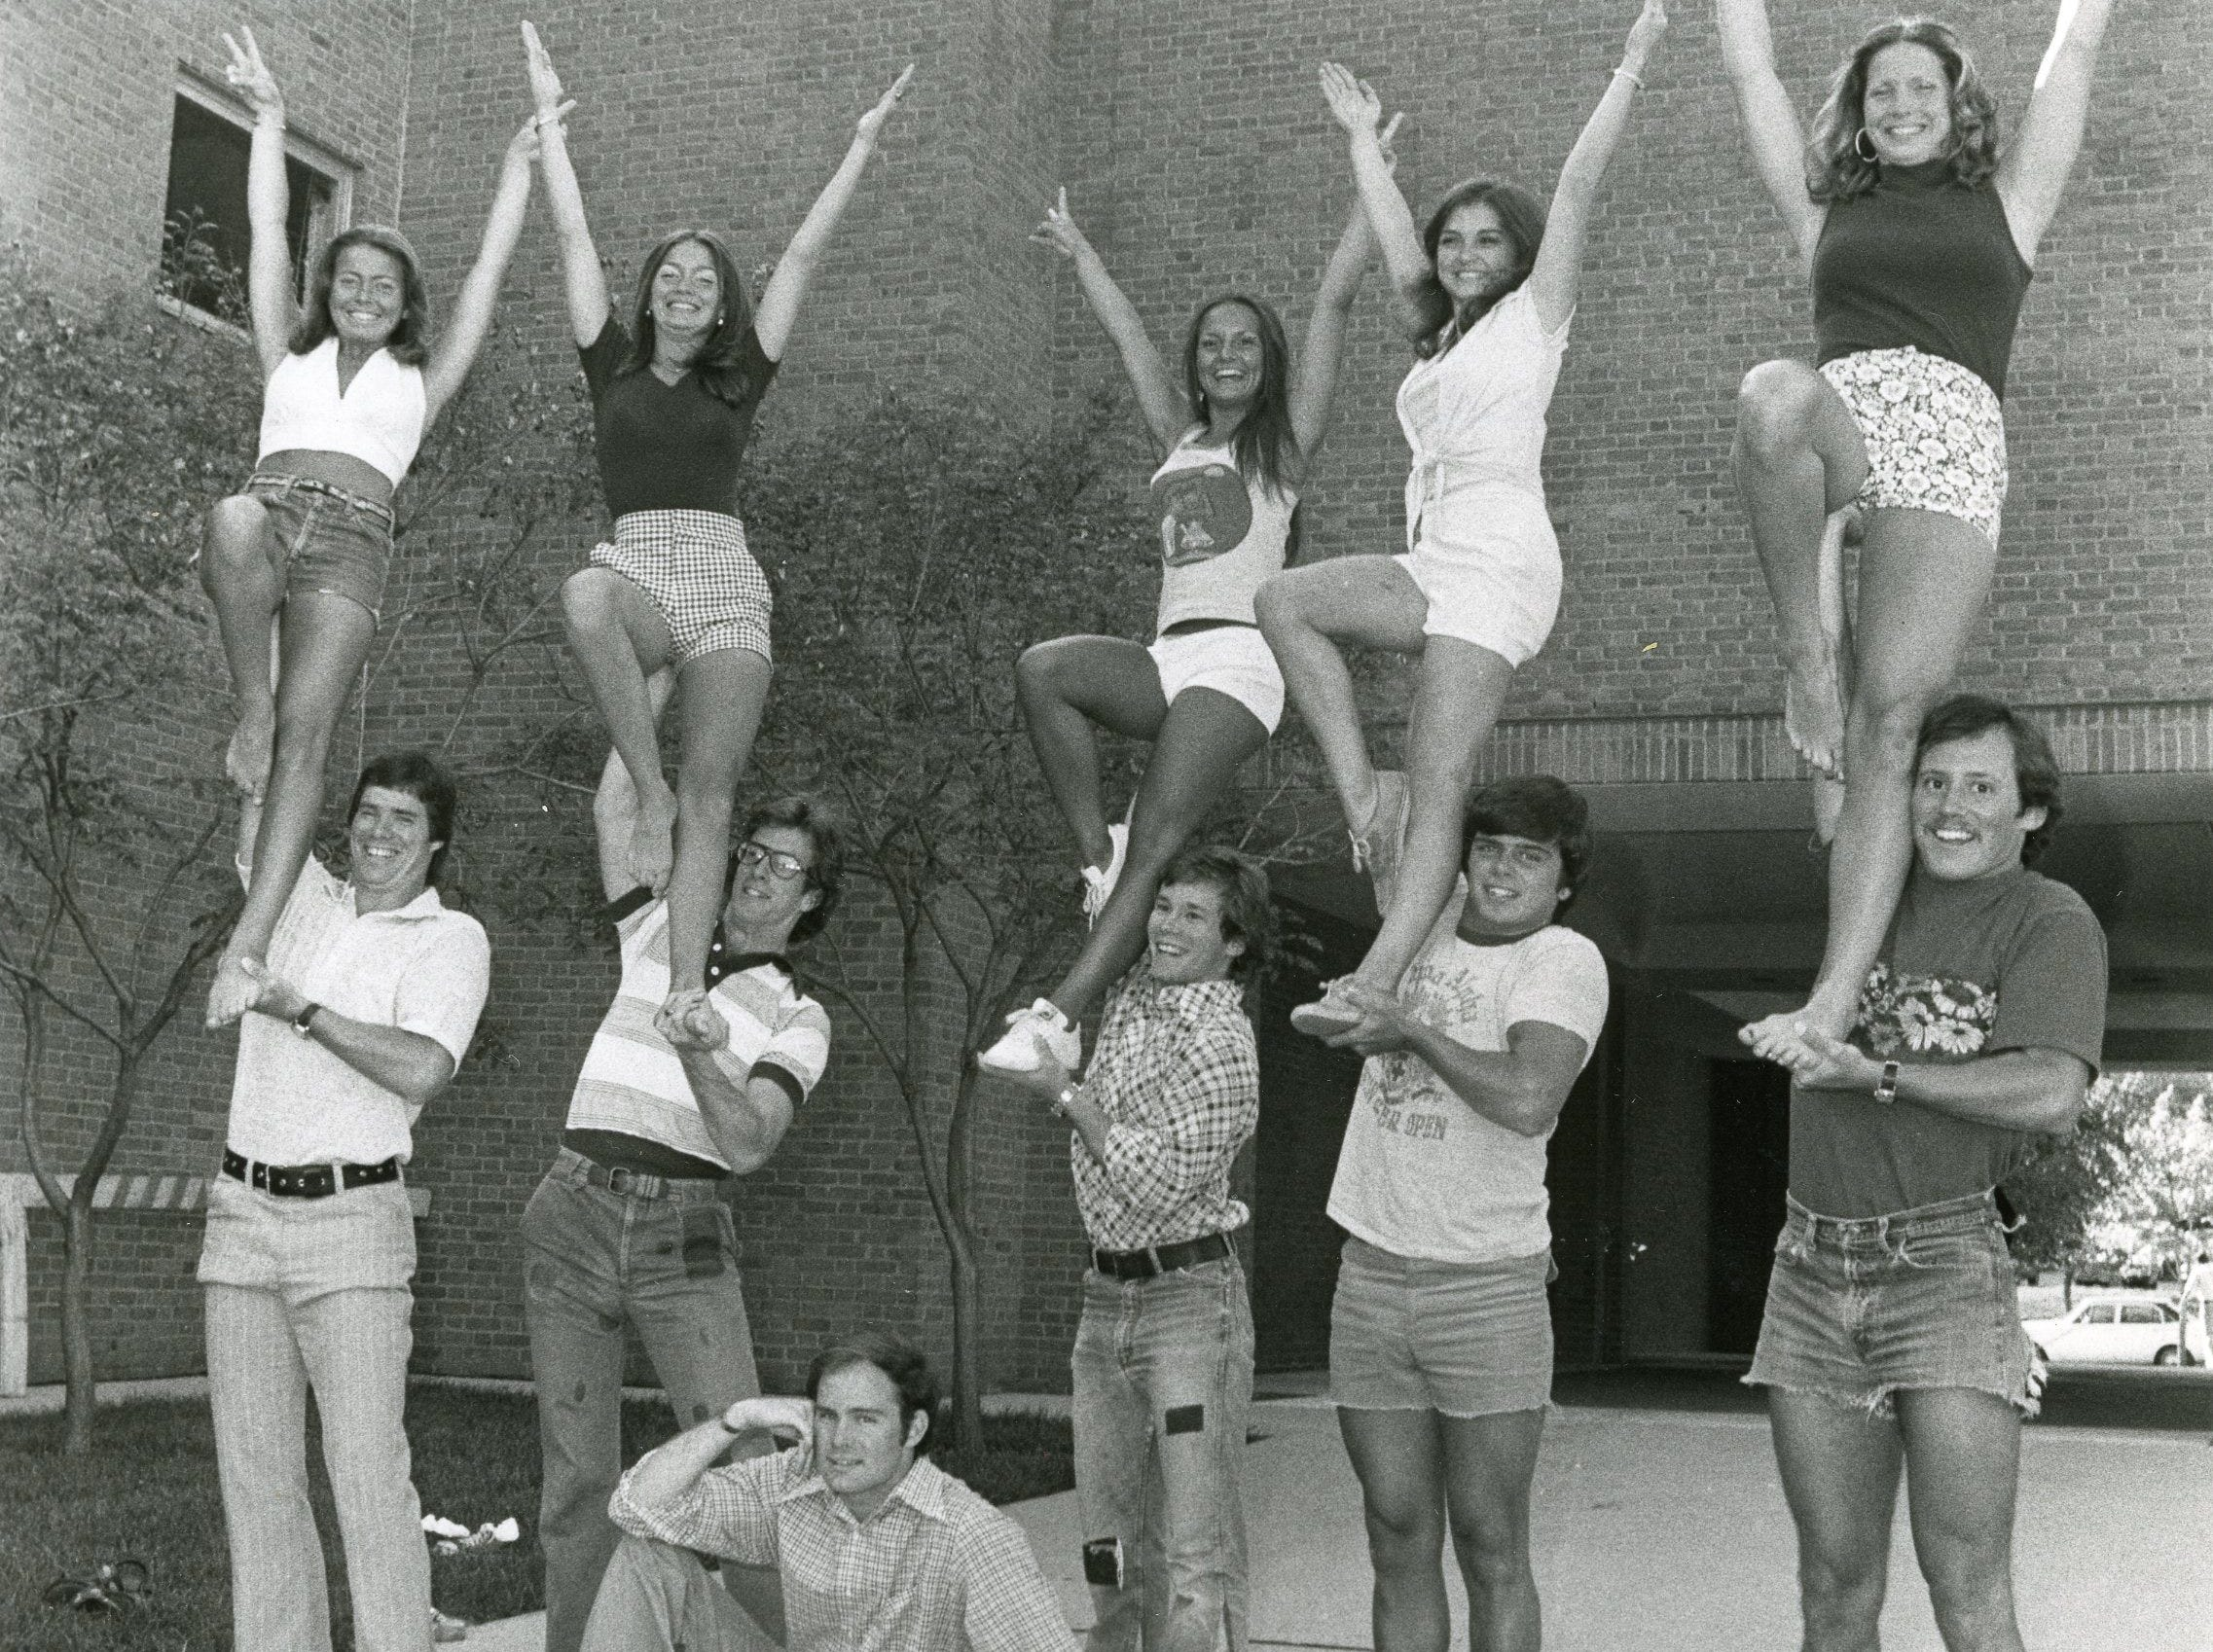 The 1975-76 UT cheer team included (bases) Rex Horton, Wear Culvahouse, Hamp Morrison (Smokey), John Bibb, Steve Pickard, Ernie Lehning; (flyers) Rosemary Keim, Julie Brown, Cindy Green, Mary Hanes Lancaster and Vicki Hays.